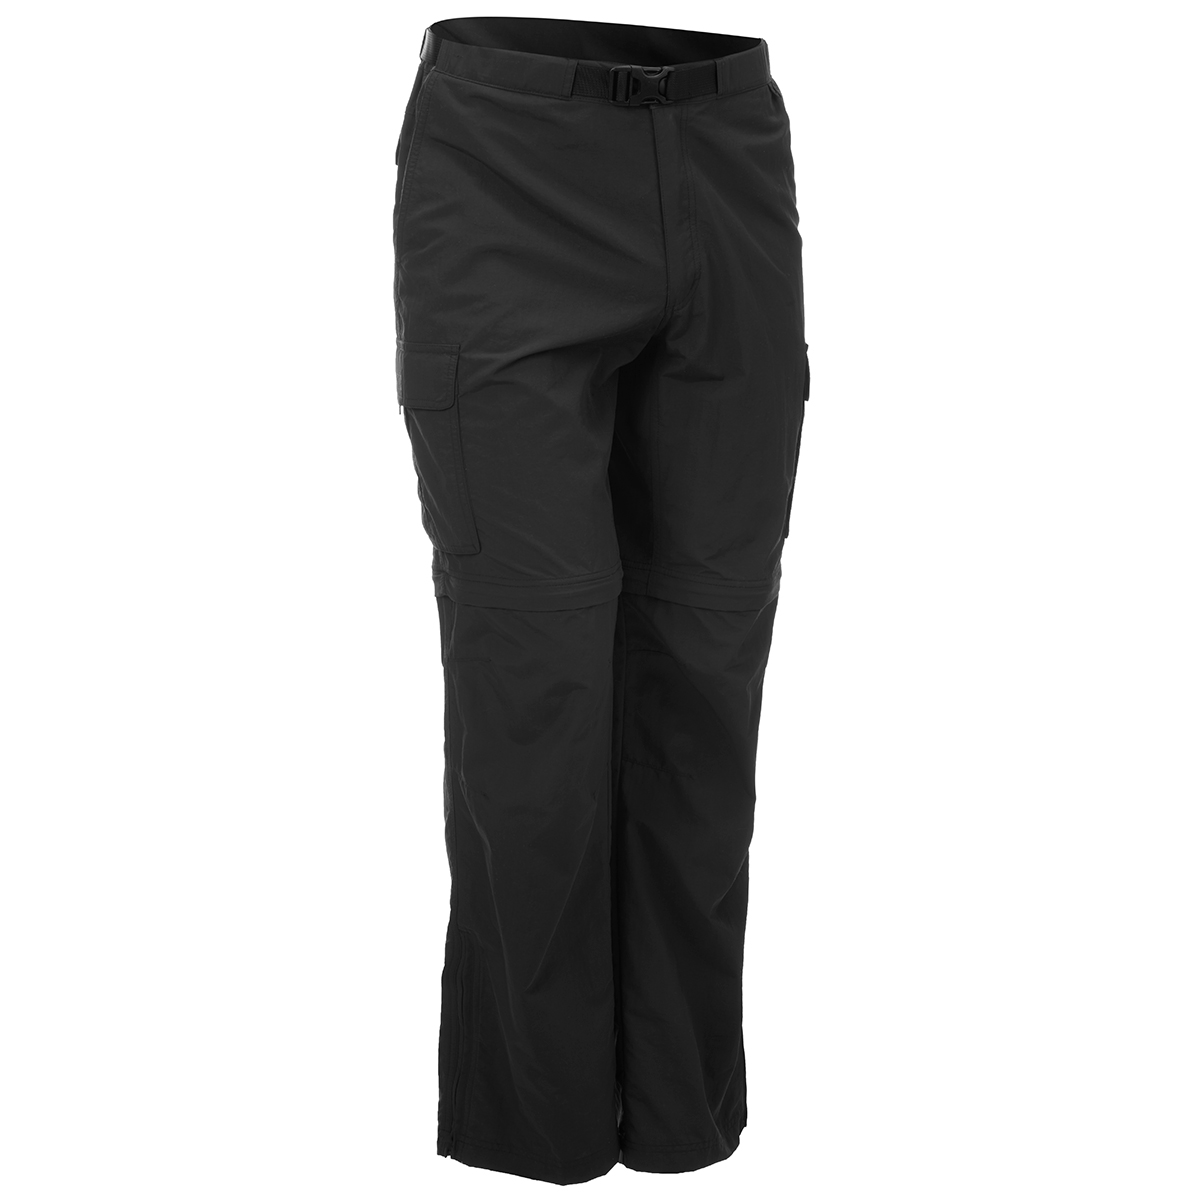 Ems Men's Camp Cargo Zip-Off Pants - Black, 35/30